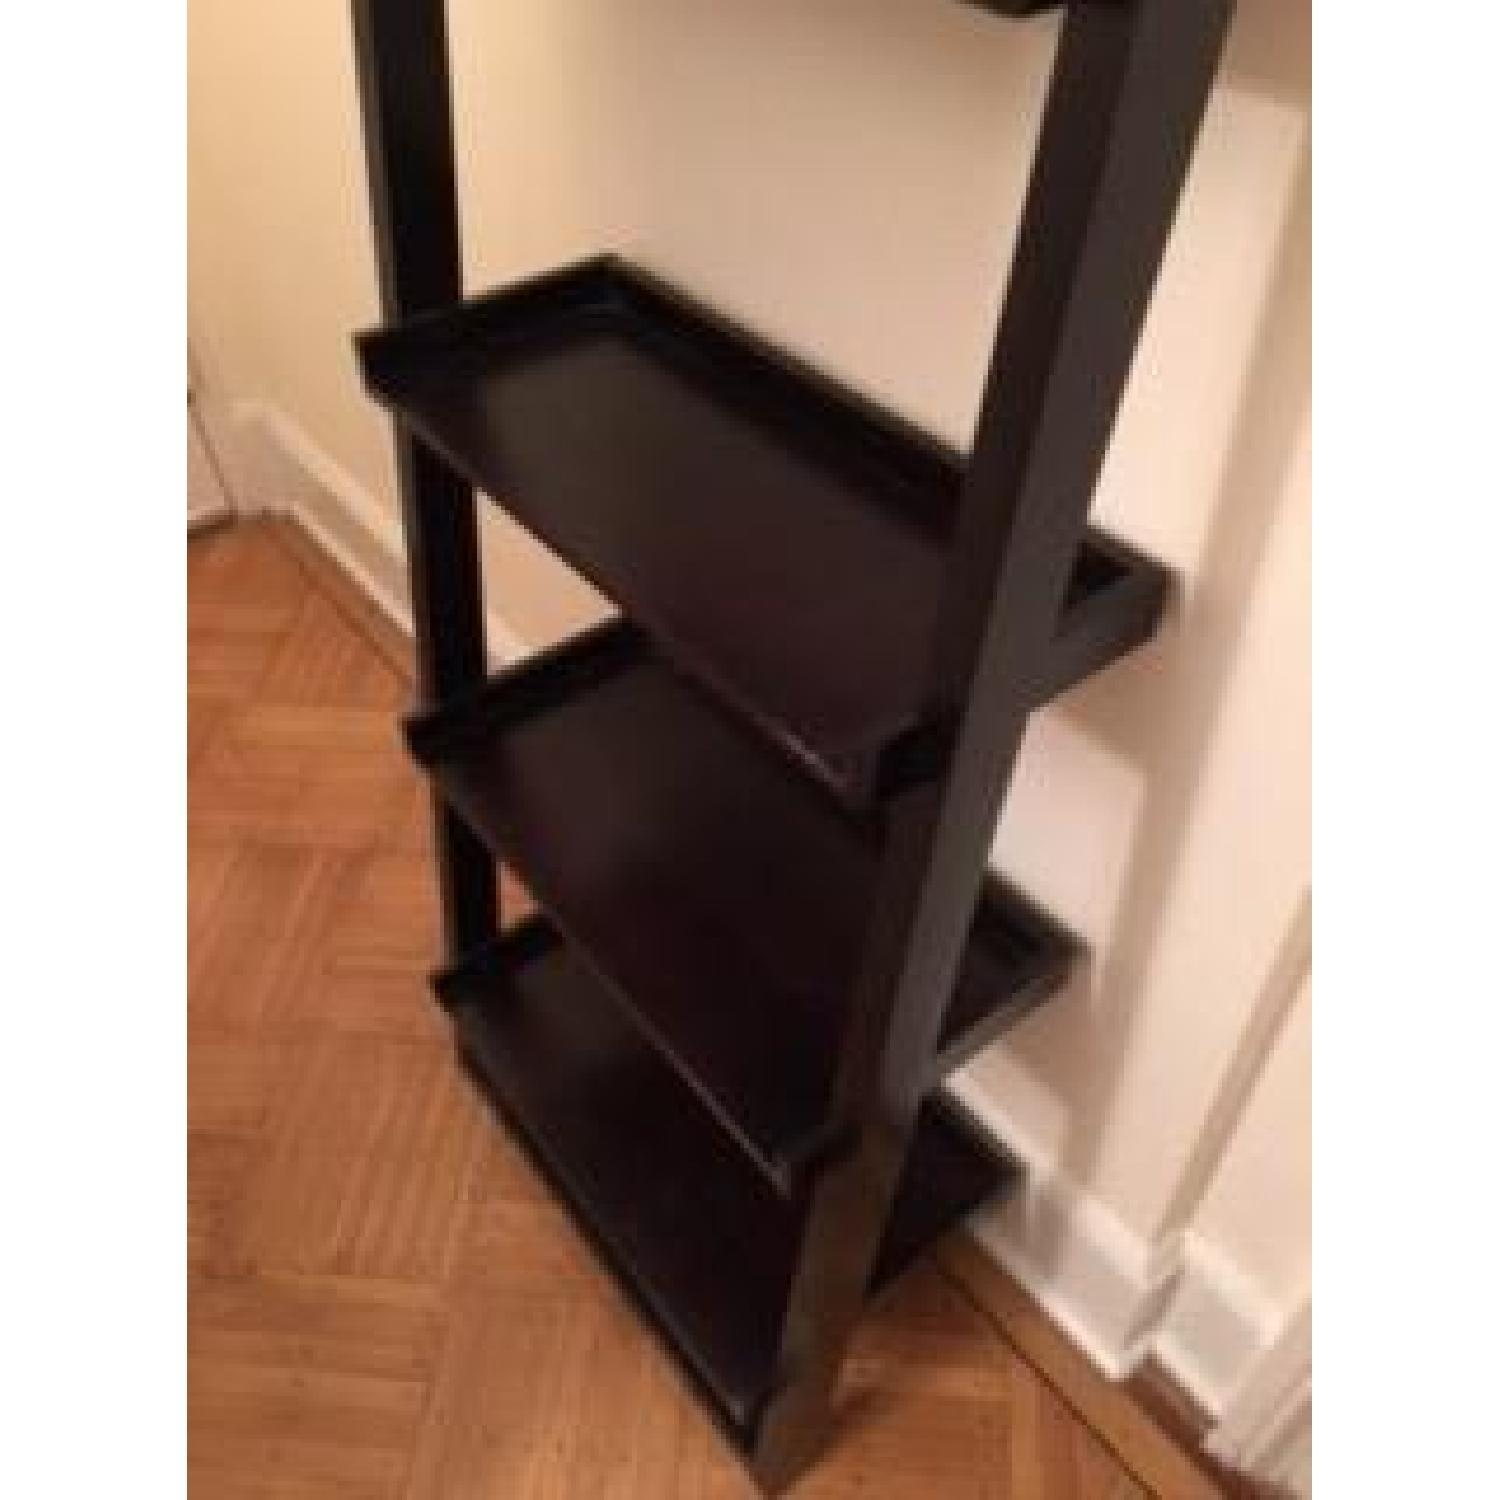 Crate & Barrel Leaning Bookcase - image-3